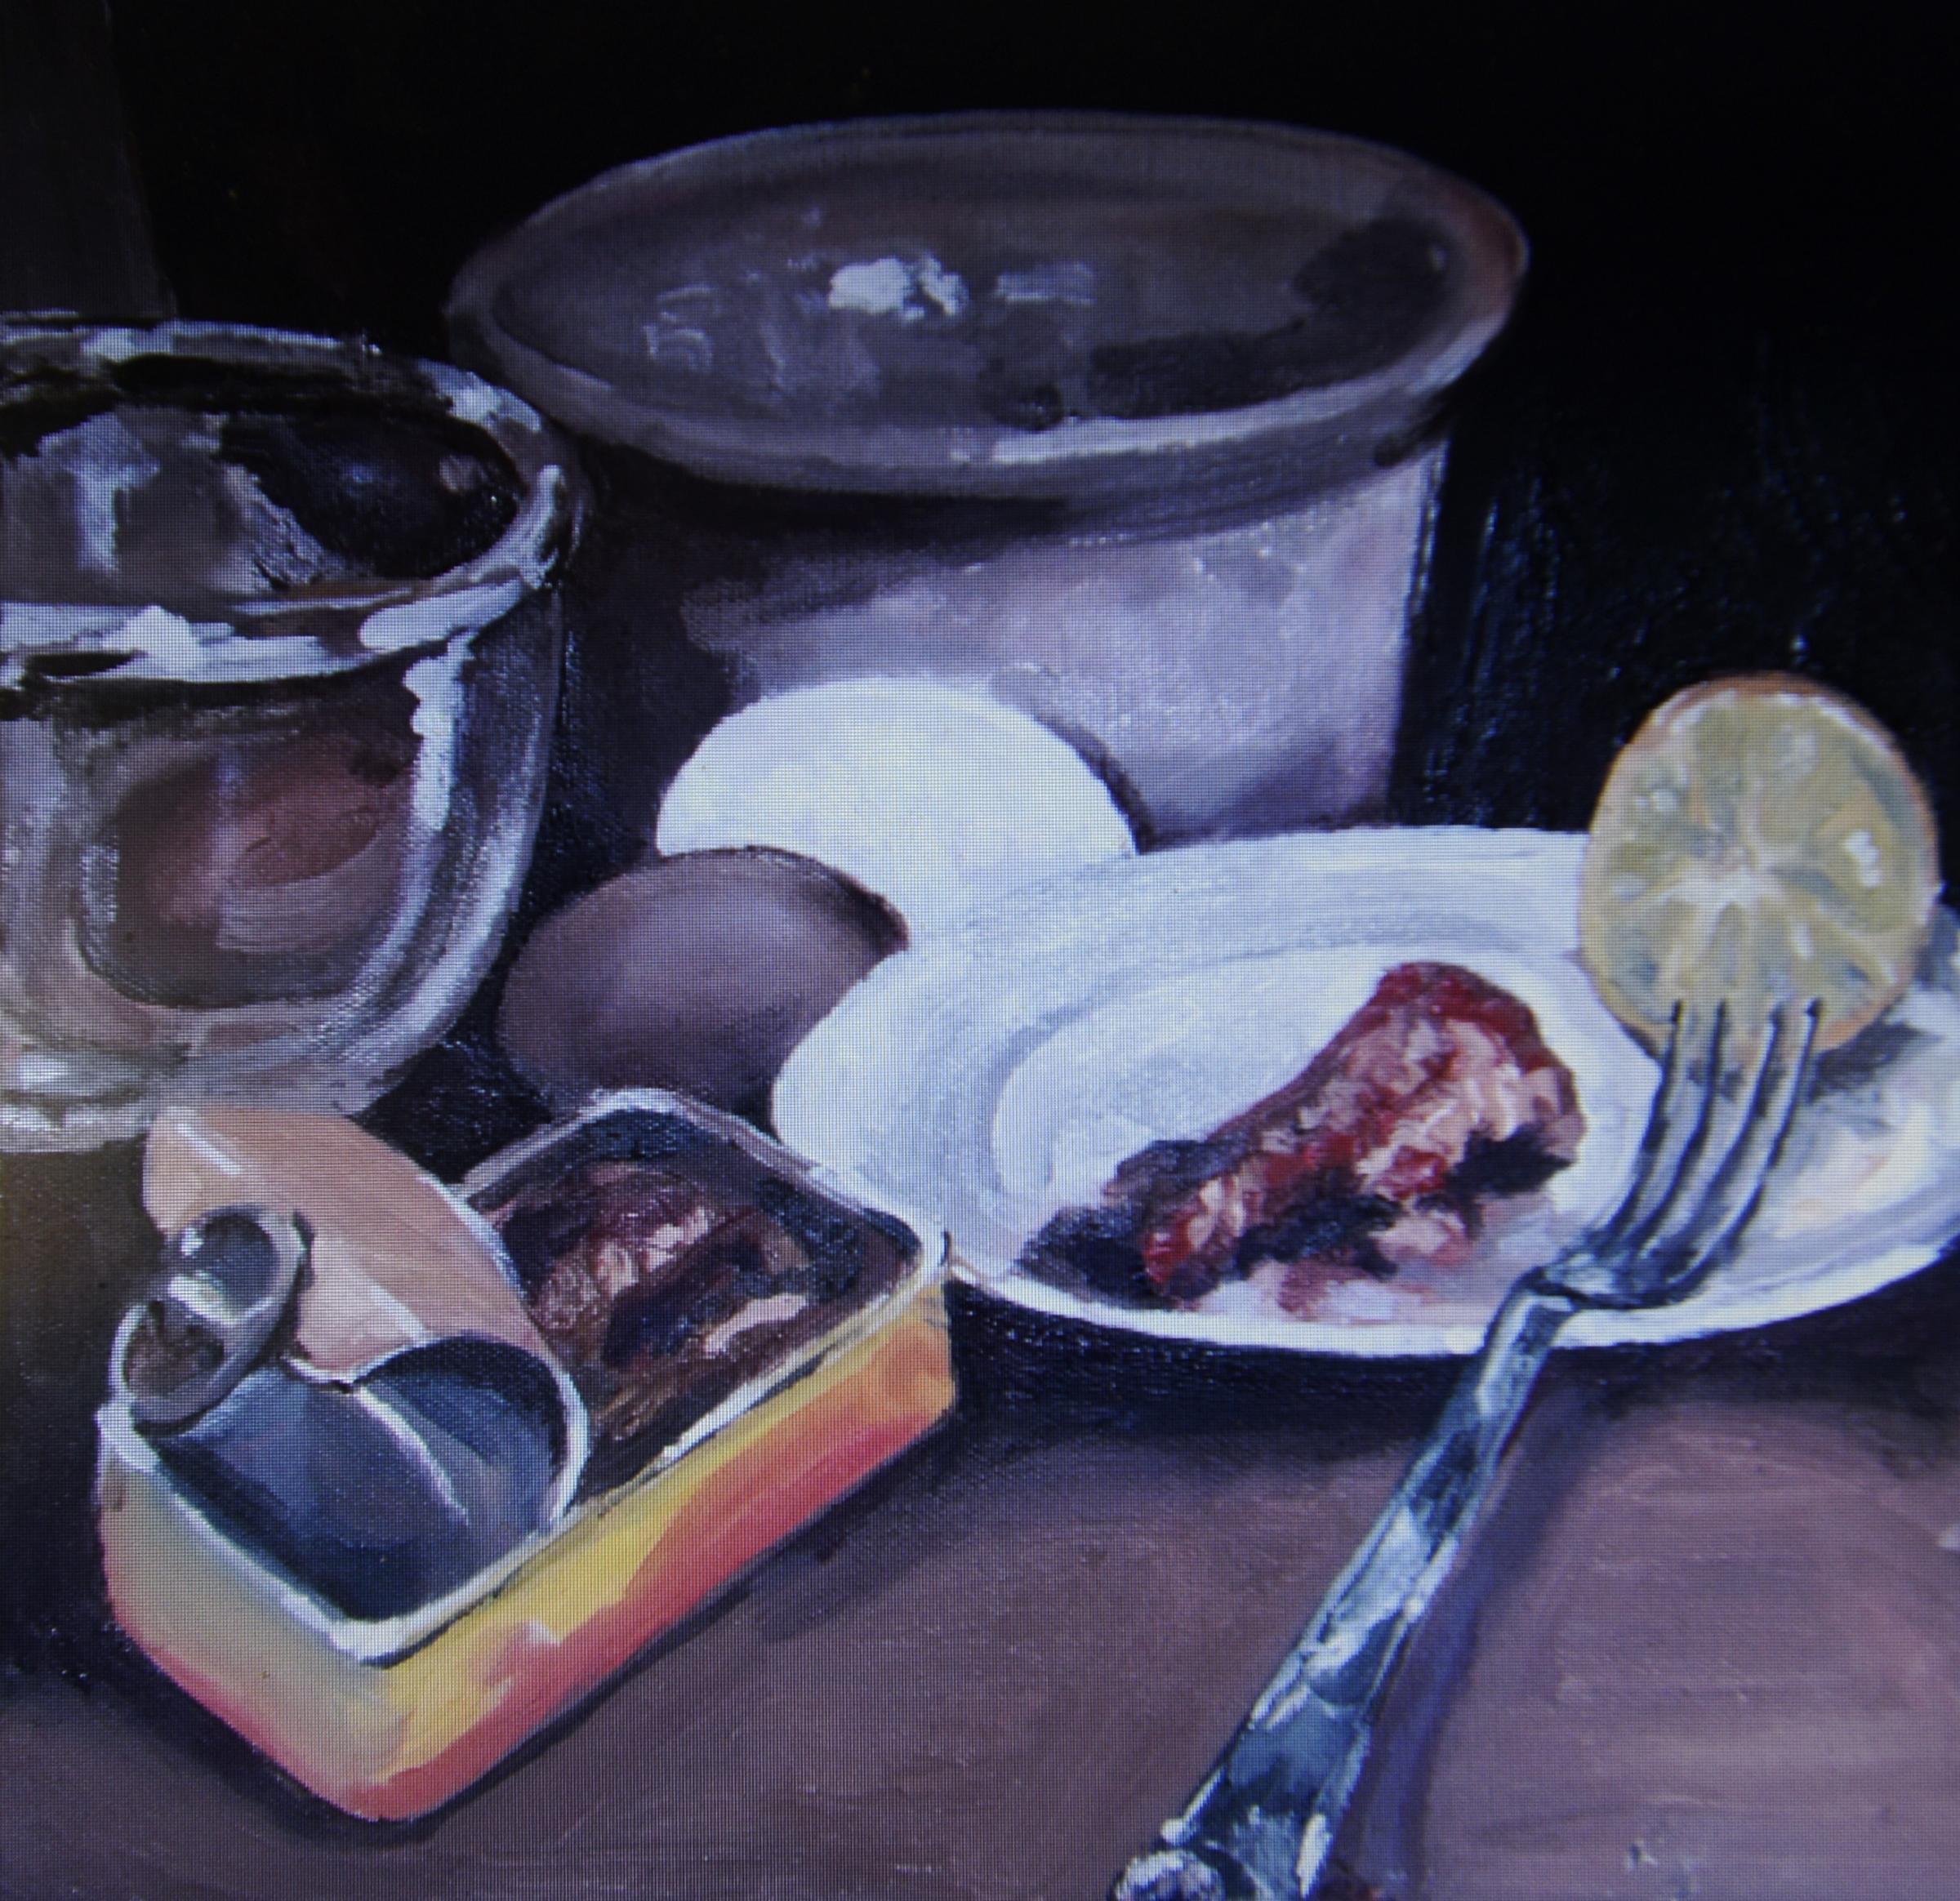 Art exhibition puts the focus on food this weekend at Kendal